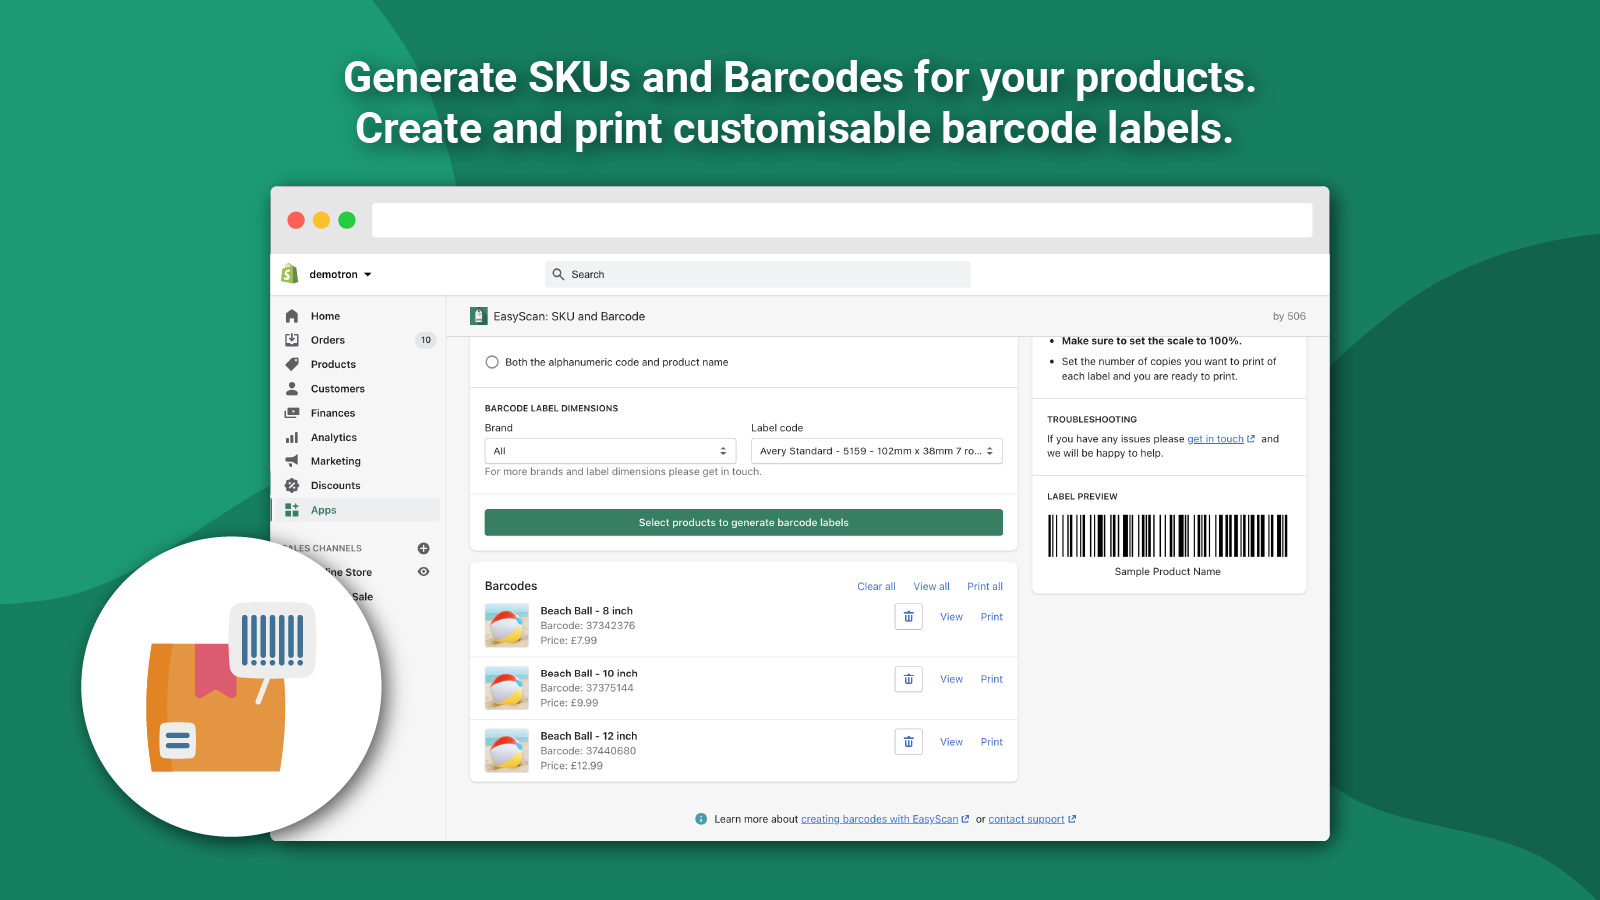 Generate and print barcodes